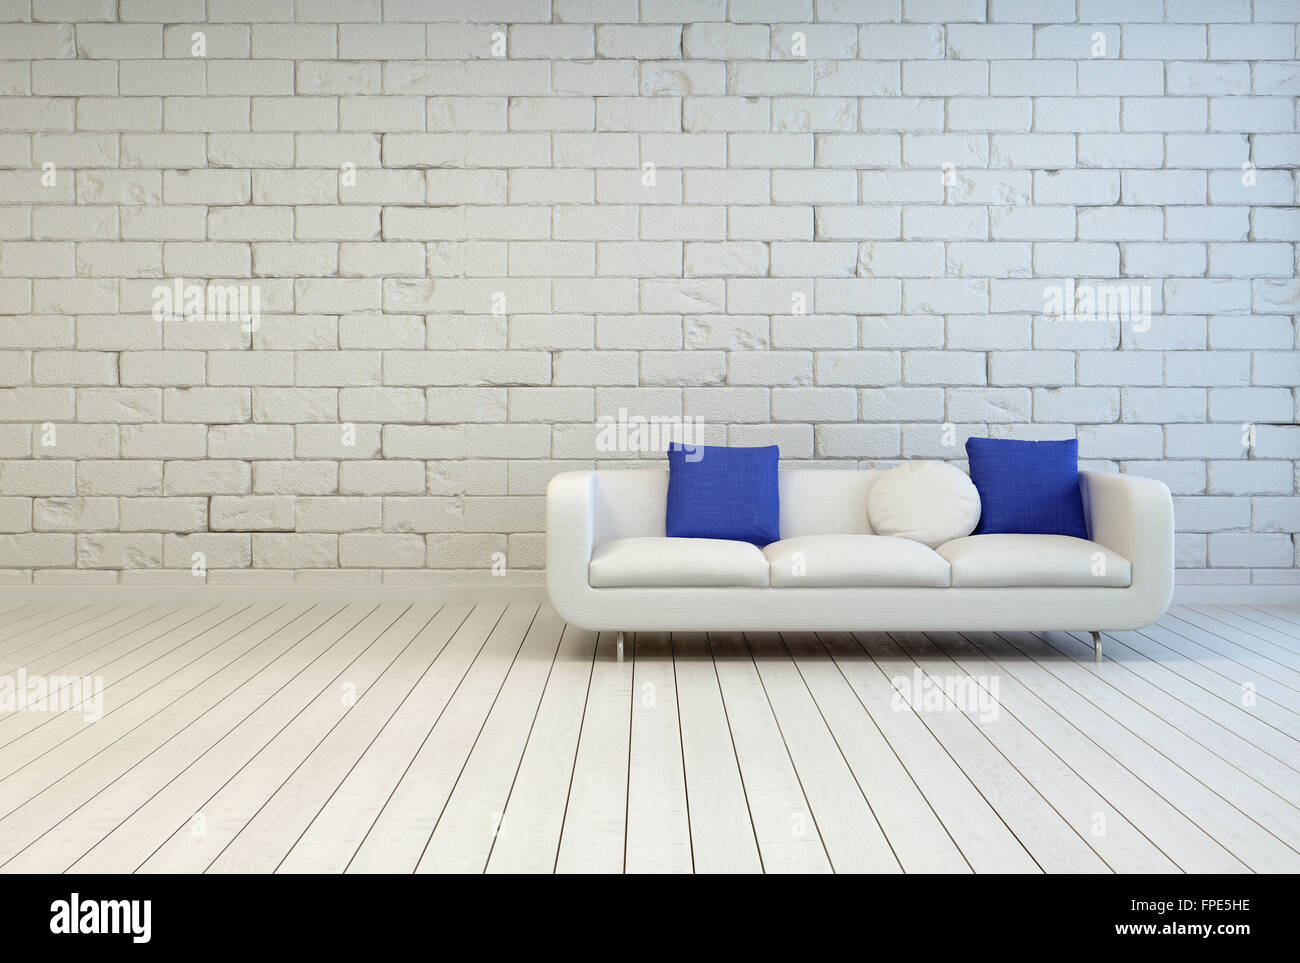 empty room white wall tile space saving bathroom ideas archi